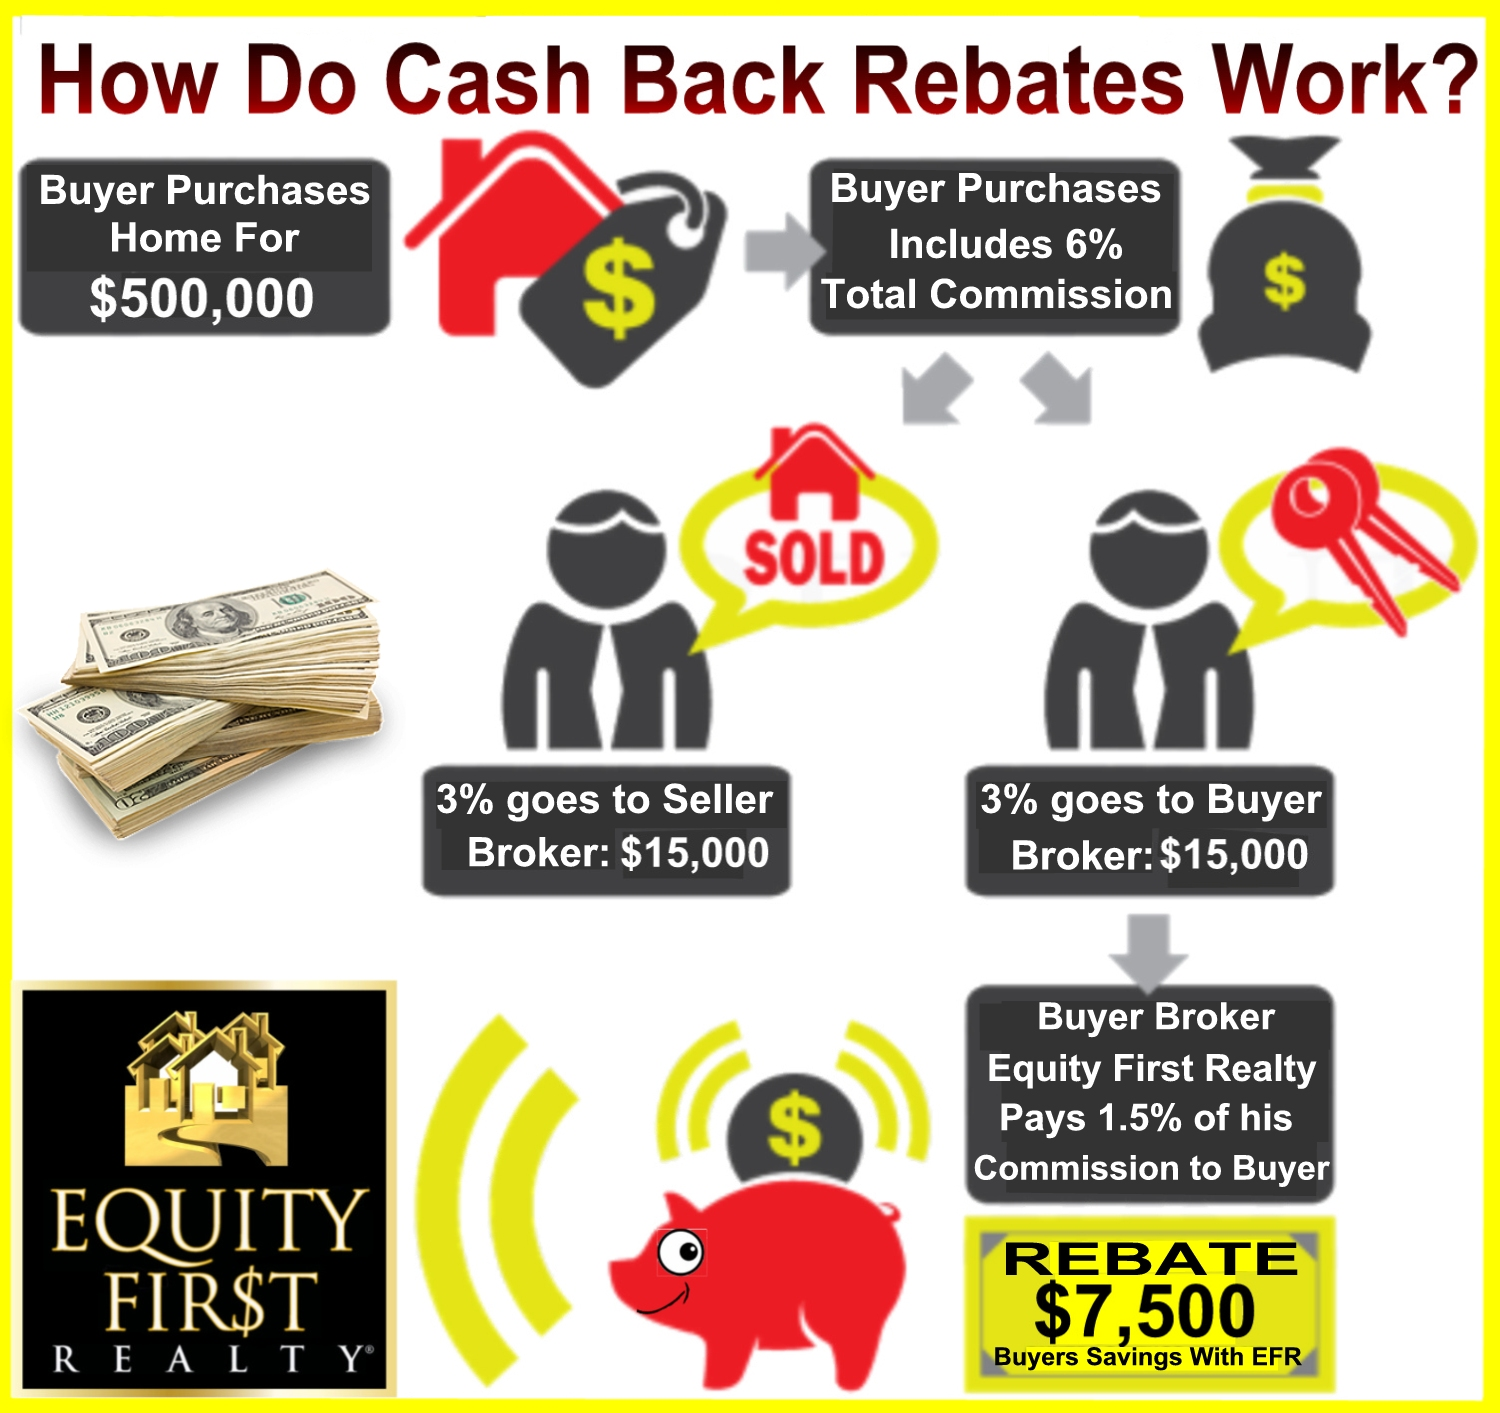 Cash Back Rebate Realtor Real Estate Buyer Program